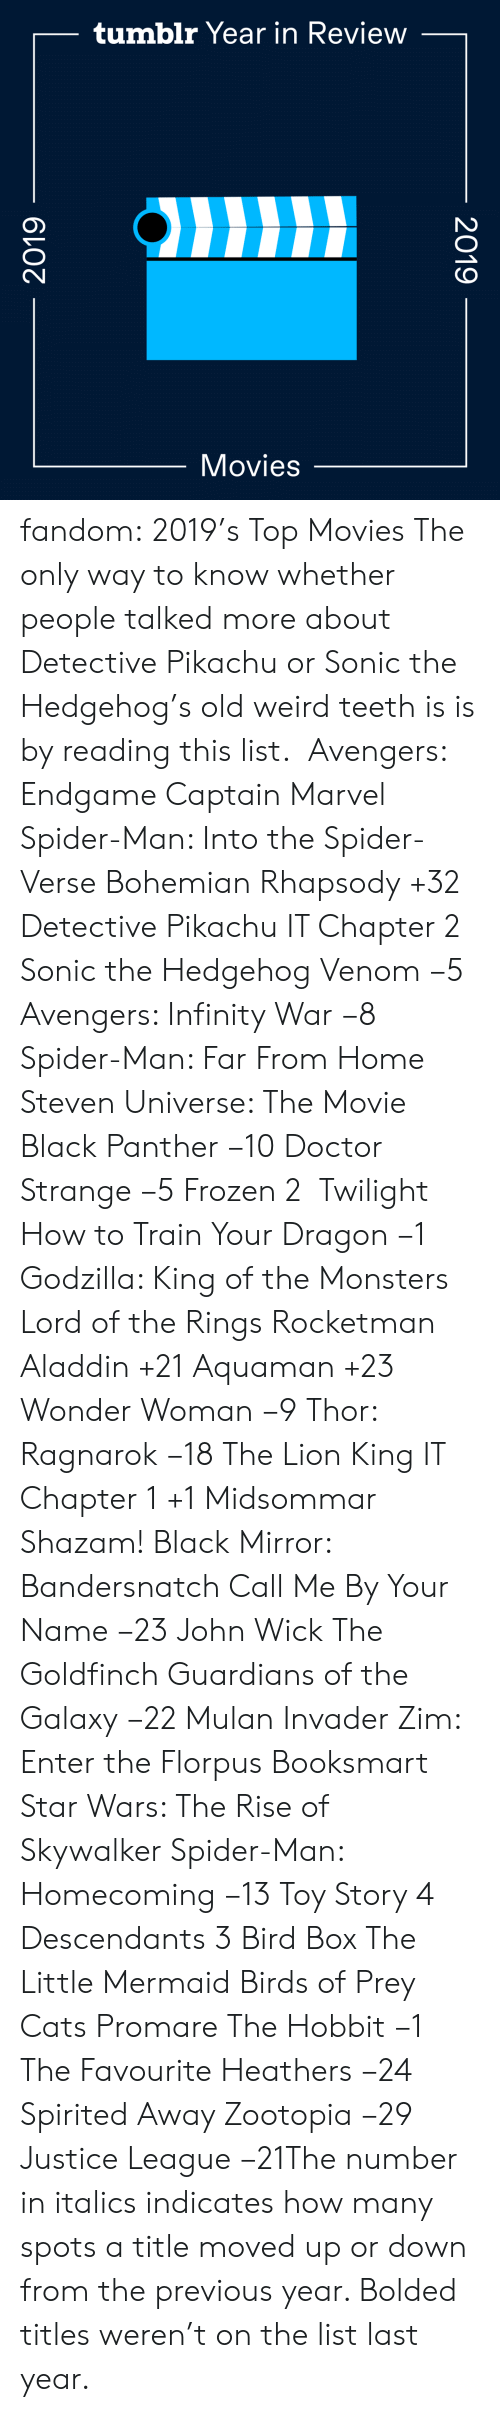 your name: tumblr Year in Review  Movies  2019  2019 fandom:  2019's Top Movies  The only way to know whether people talked more about Detective Pikachu or Sonic the Hedgehog's old weird teeth is is by reading this list.   Avengers: Endgame  Captain Marvel  Spider-Man: Into the Spider-Verse  Bohemian Rhapsody +32  Detective Pikachu  IT Chapter 2  Sonic the Hedgehog  Venom −5  Avengers: Infinity War −8  Spider-Man: Far From Home  Steven Universe: The Movie  Black Panther −10  Doctor Strange −5  Frozen 2   Twilight  How to Train Your Dragon −1  Godzilla: King of the Monsters  Lord of the Rings  Rocketman  Aladdin +21  Aquaman +23  Wonder Woman −9  Thor: Ragnarok −18  The Lion King  IT Chapter 1 +1  Midsommar  Shazam!  Black Mirror: Bandersnatch  Call Me By Your Name −23  John Wick  The Goldfinch  Guardians of the Galaxy −22  Mulan  Invader Zim: Enter the Florpus  Booksmart  Star Wars: The Rise of Skywalker  Spider-Man: Homecoming −13  Toy Story 4  Descendants 3  Bird Box  The Little Mermaid  Birds of Prey  Cats  Promare  The Hobbit −1  The Favourite  Heathers −24  Spirited Away  Zootopia −29 Justice League −21The number in italics indicates how many spots a title moved up or down from the previous year. Bolded titles weren't on the list last year.